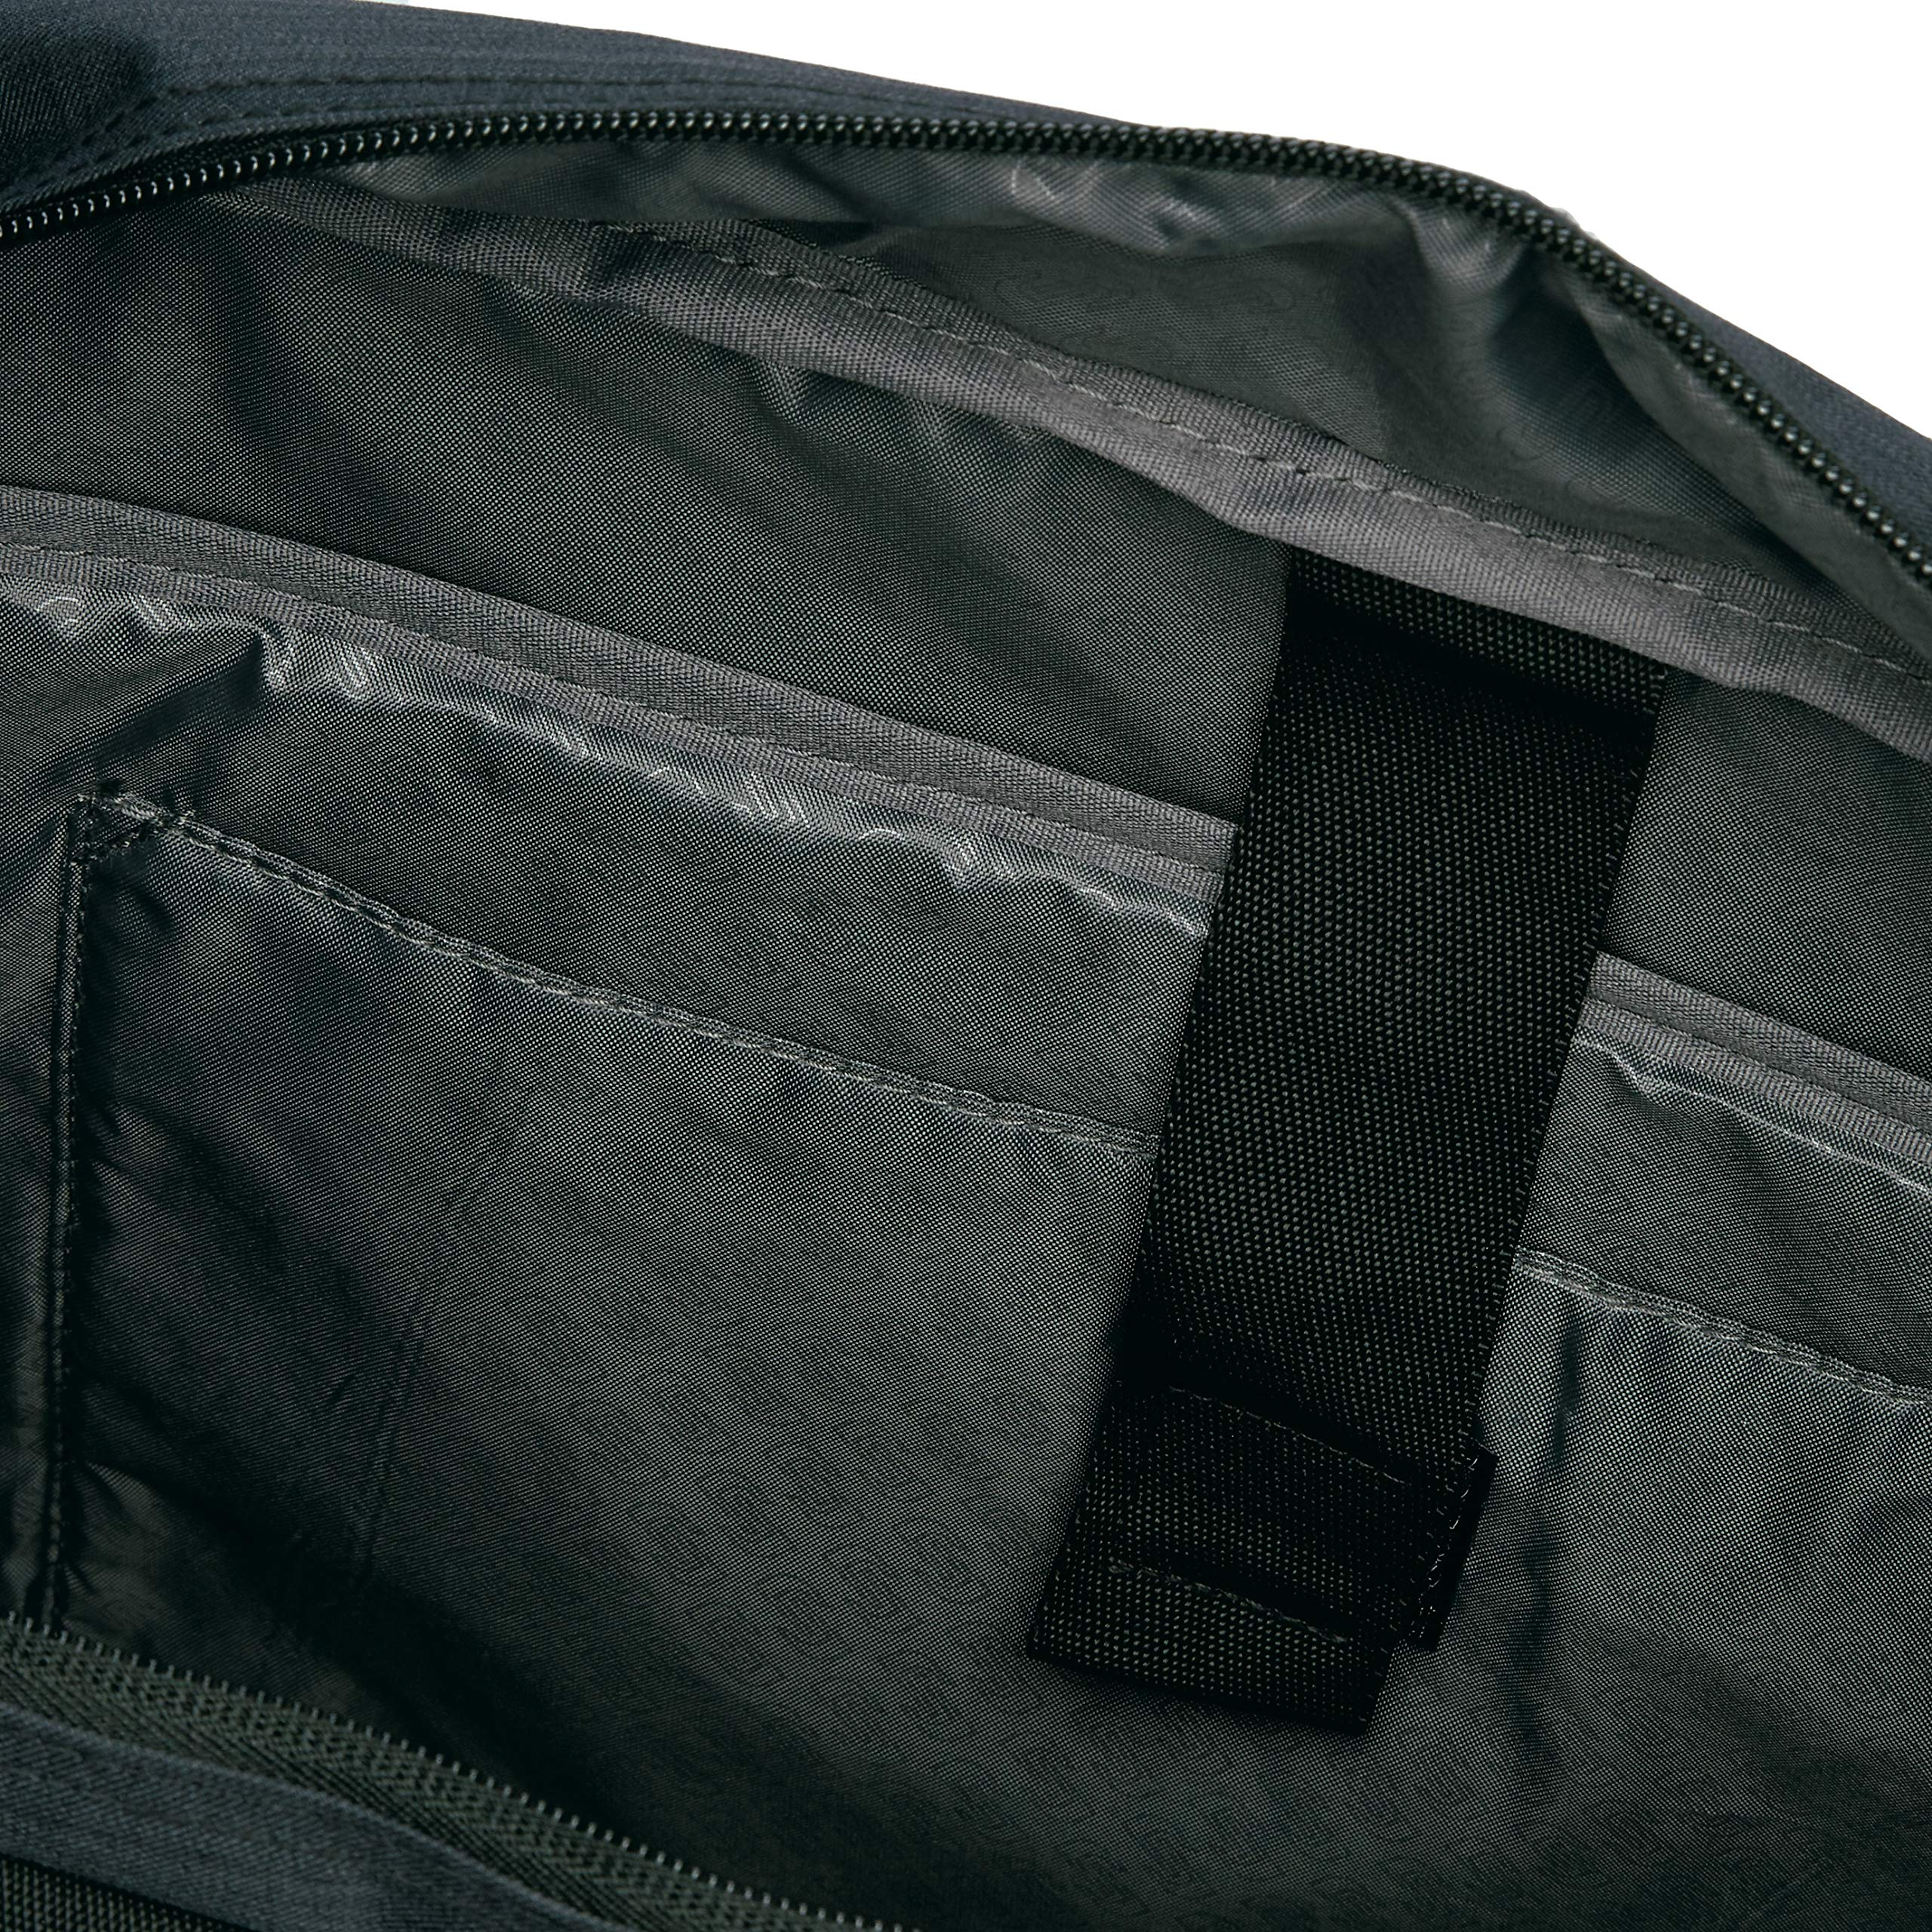 Solo Duane 15.6 Inch Laptop Hybrid Briefcase, Converts to Backpack, Slate, Amazon Exclusive by SOLO (Image #7)